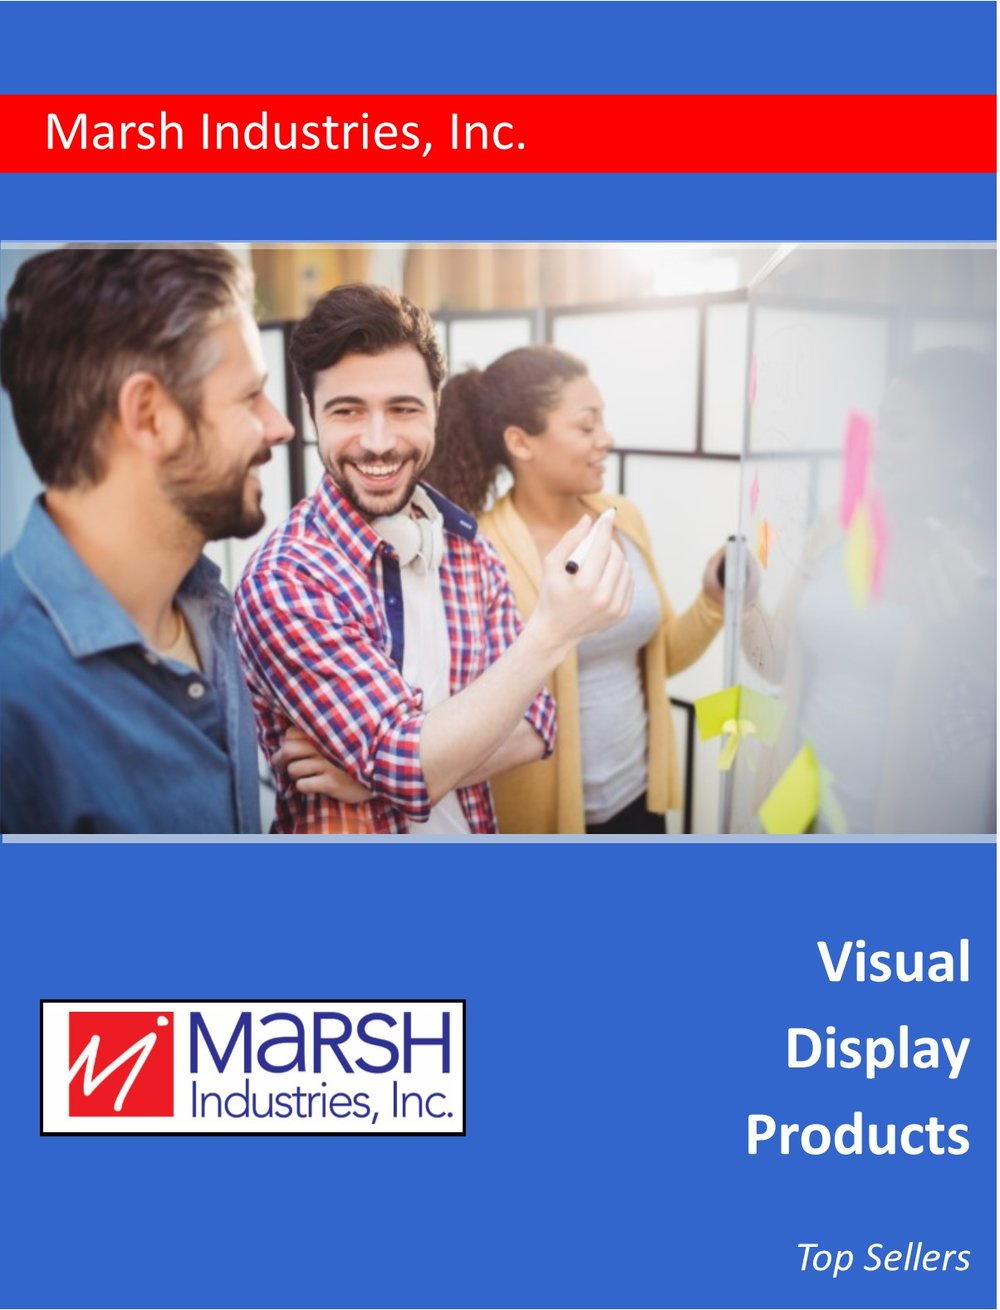 visual display products - top sellers guide - front page graphic.jpg